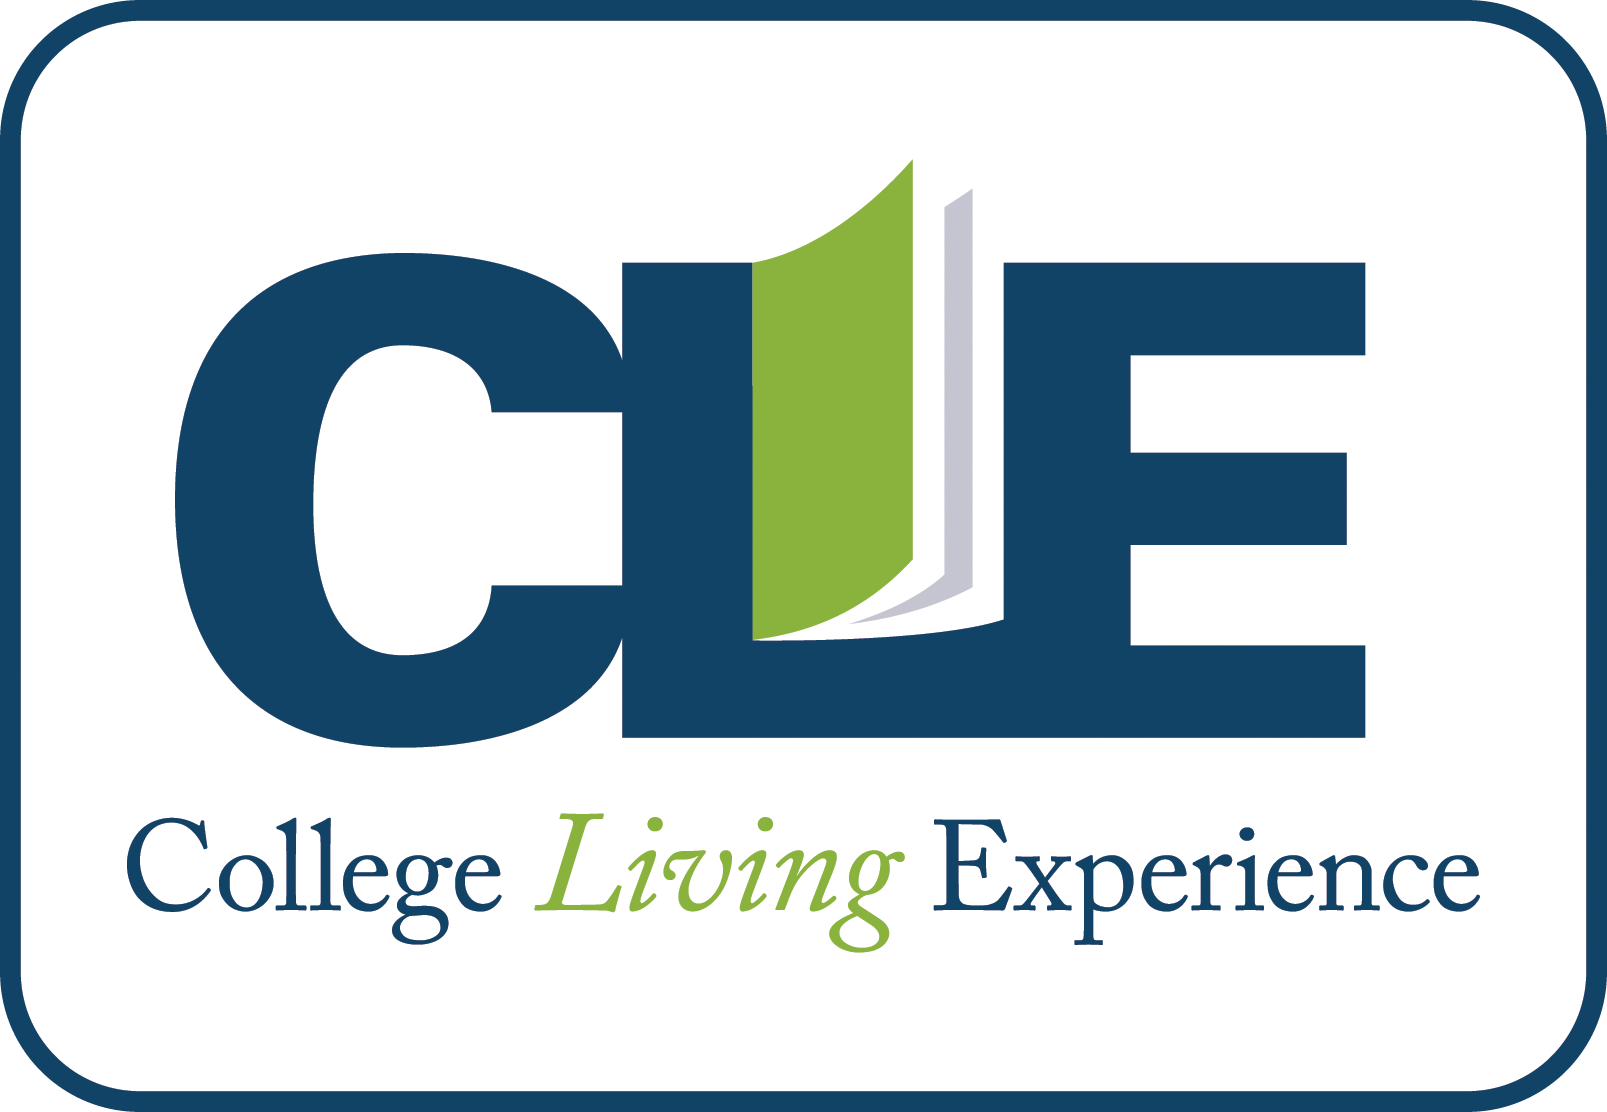 Logo shows the acronym CLE with a book inside the L then the full name College Living Experience